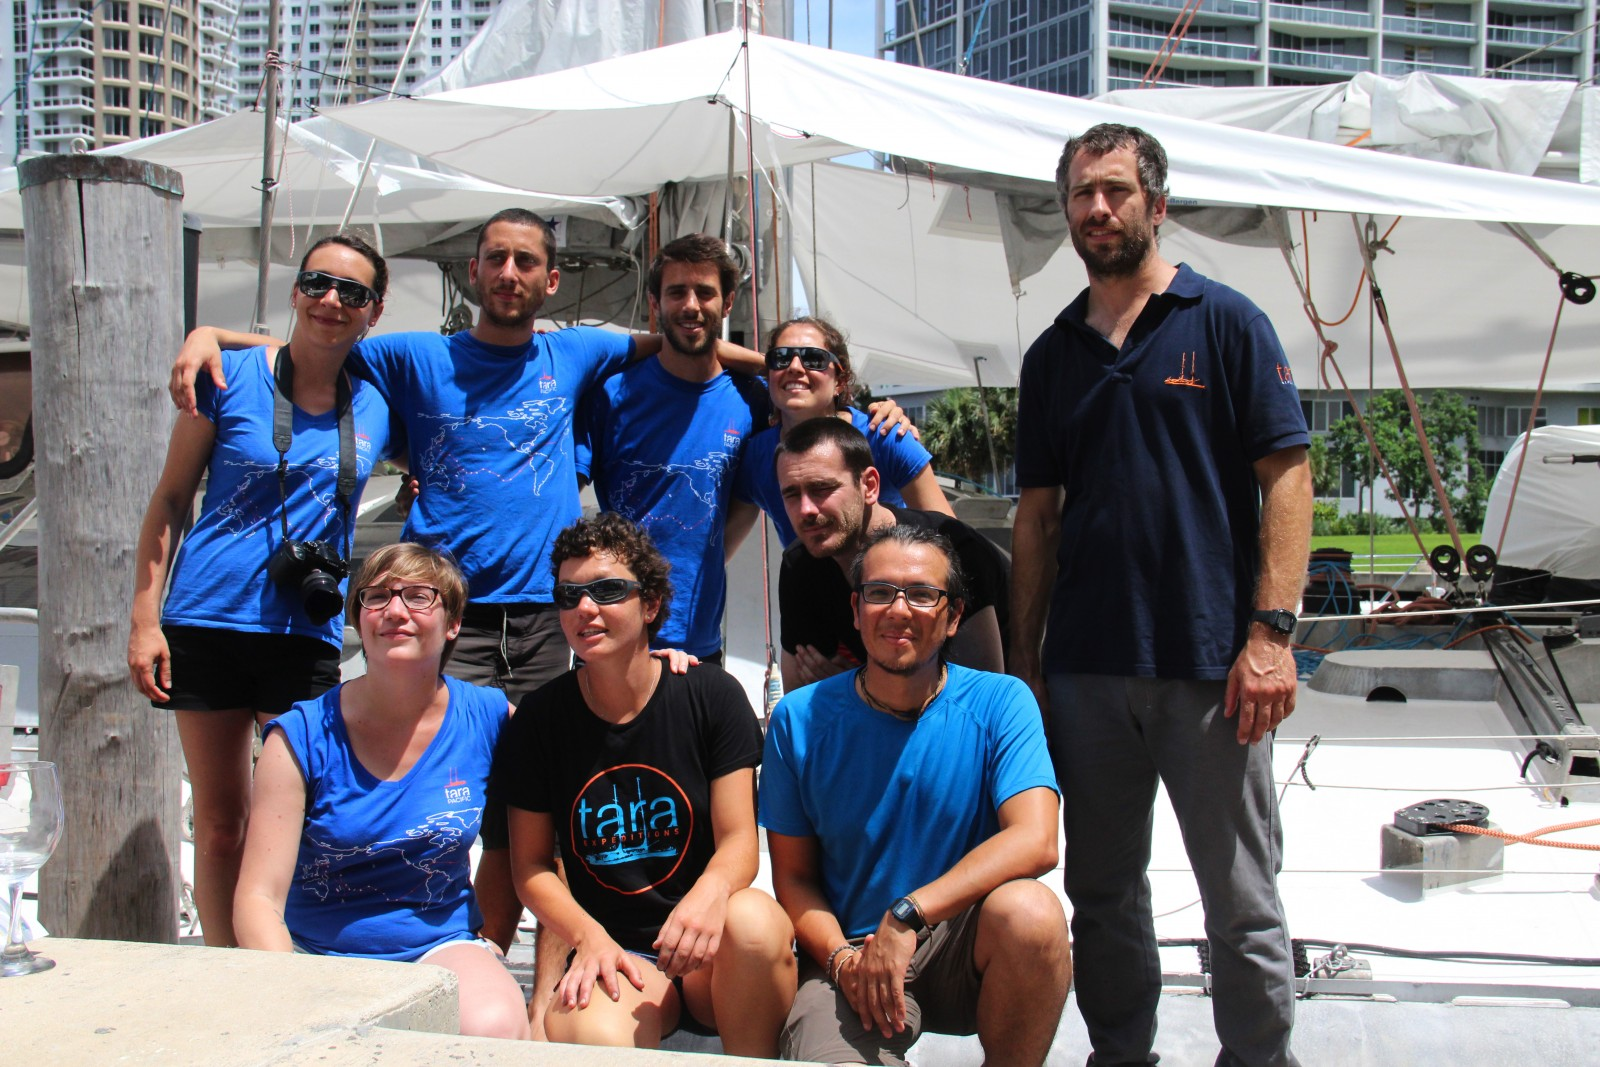 The crew and staff of S/Y Tara arrived at Epic Marina in Miami on June 28 and spent a week preparing for their 2016-2018 expedition. PHOTO BY SUZETTE COOK